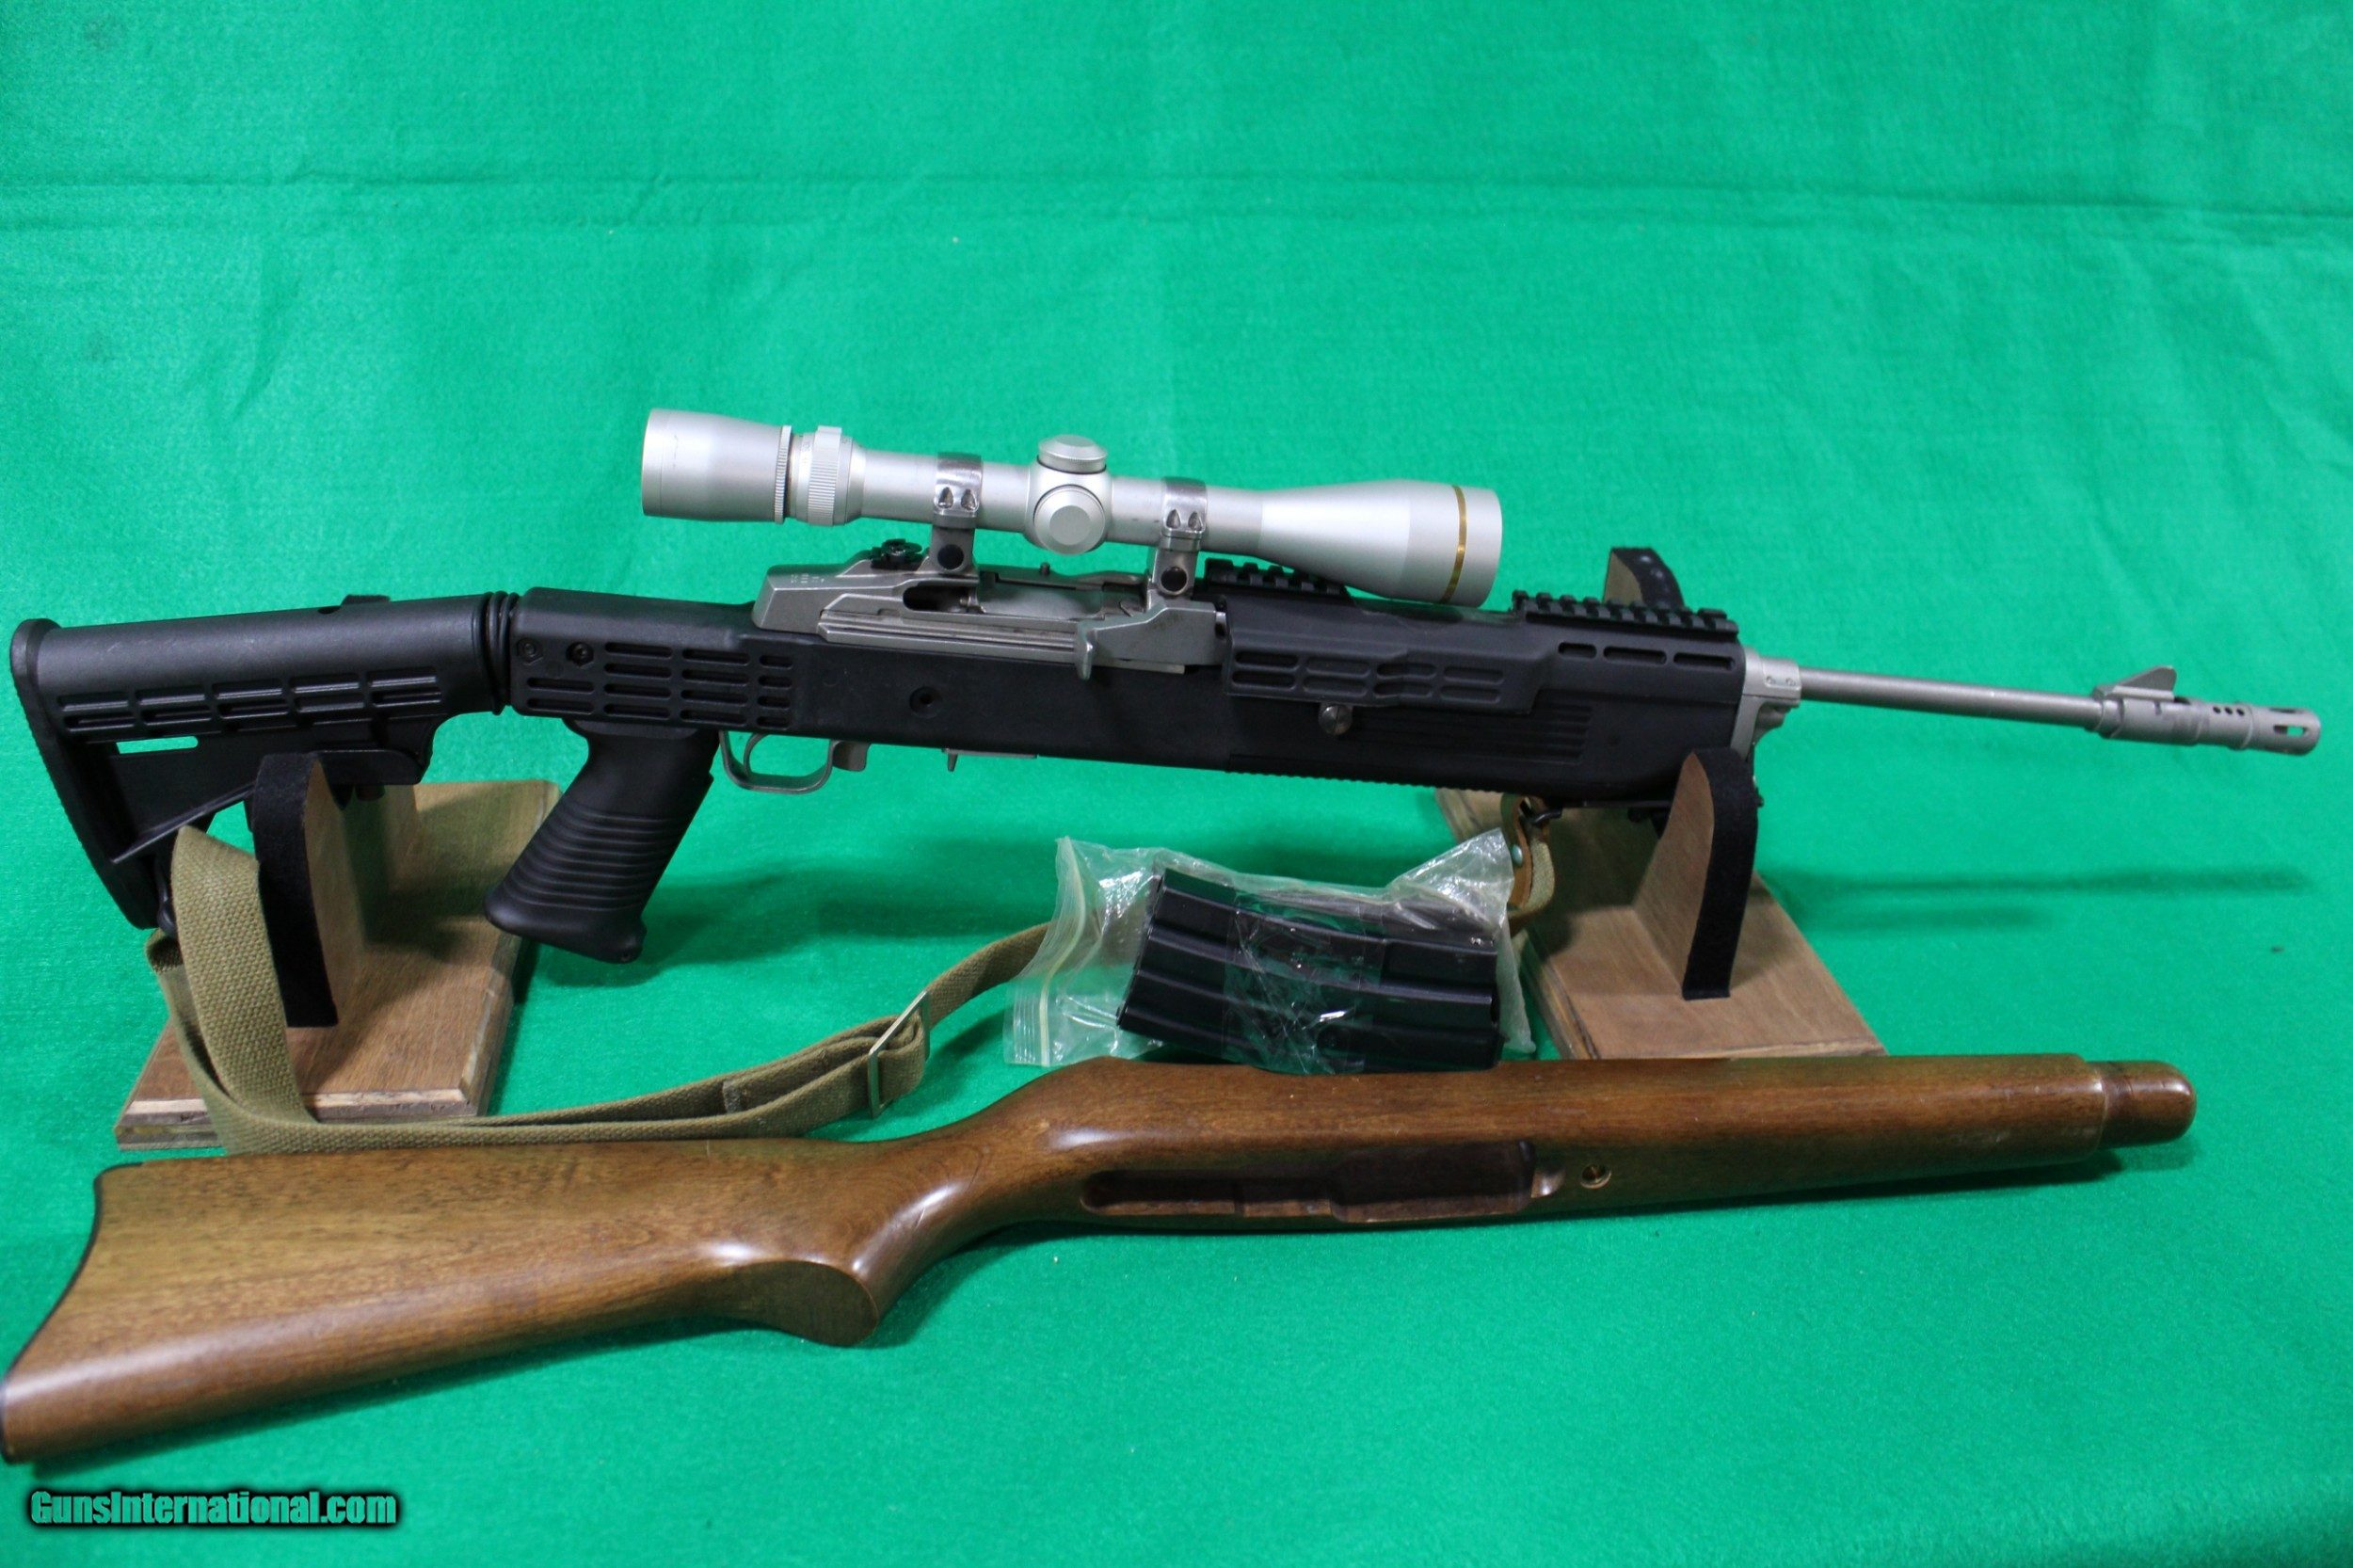 Used Ruger Mini-14 with Leupold Scope in Collapsible